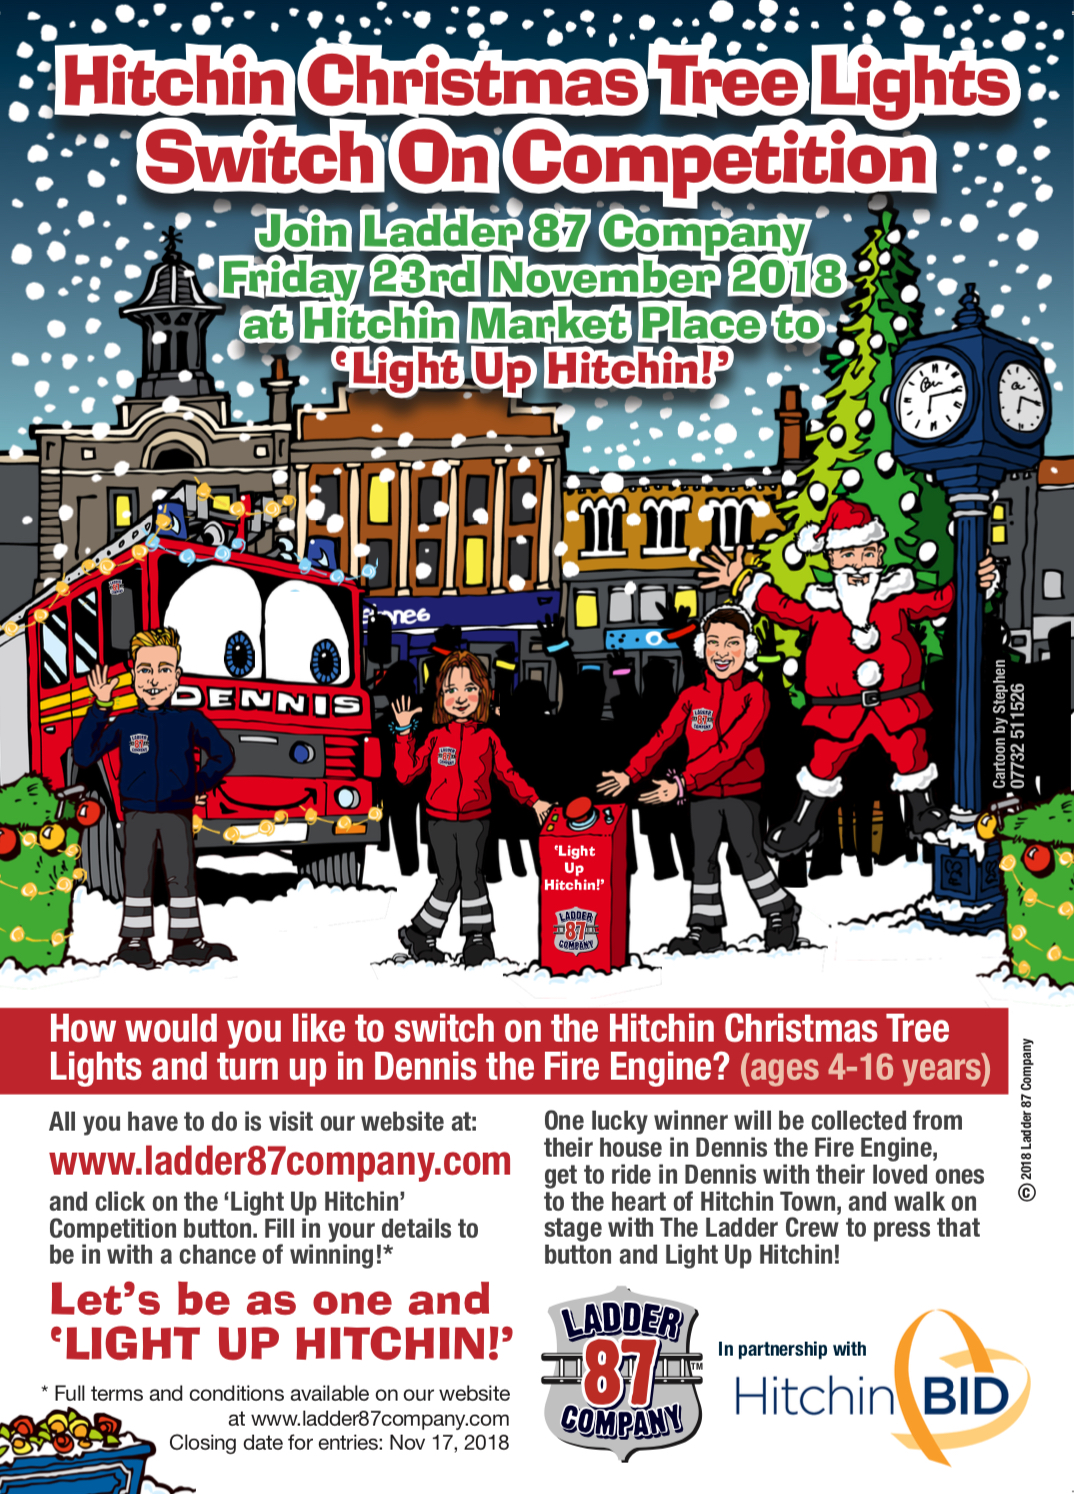 Christmas Tree Lights Competition Ladder 87 Company Parallel Click For Details Img 4270 The Win Chance To Switch On Hitchin